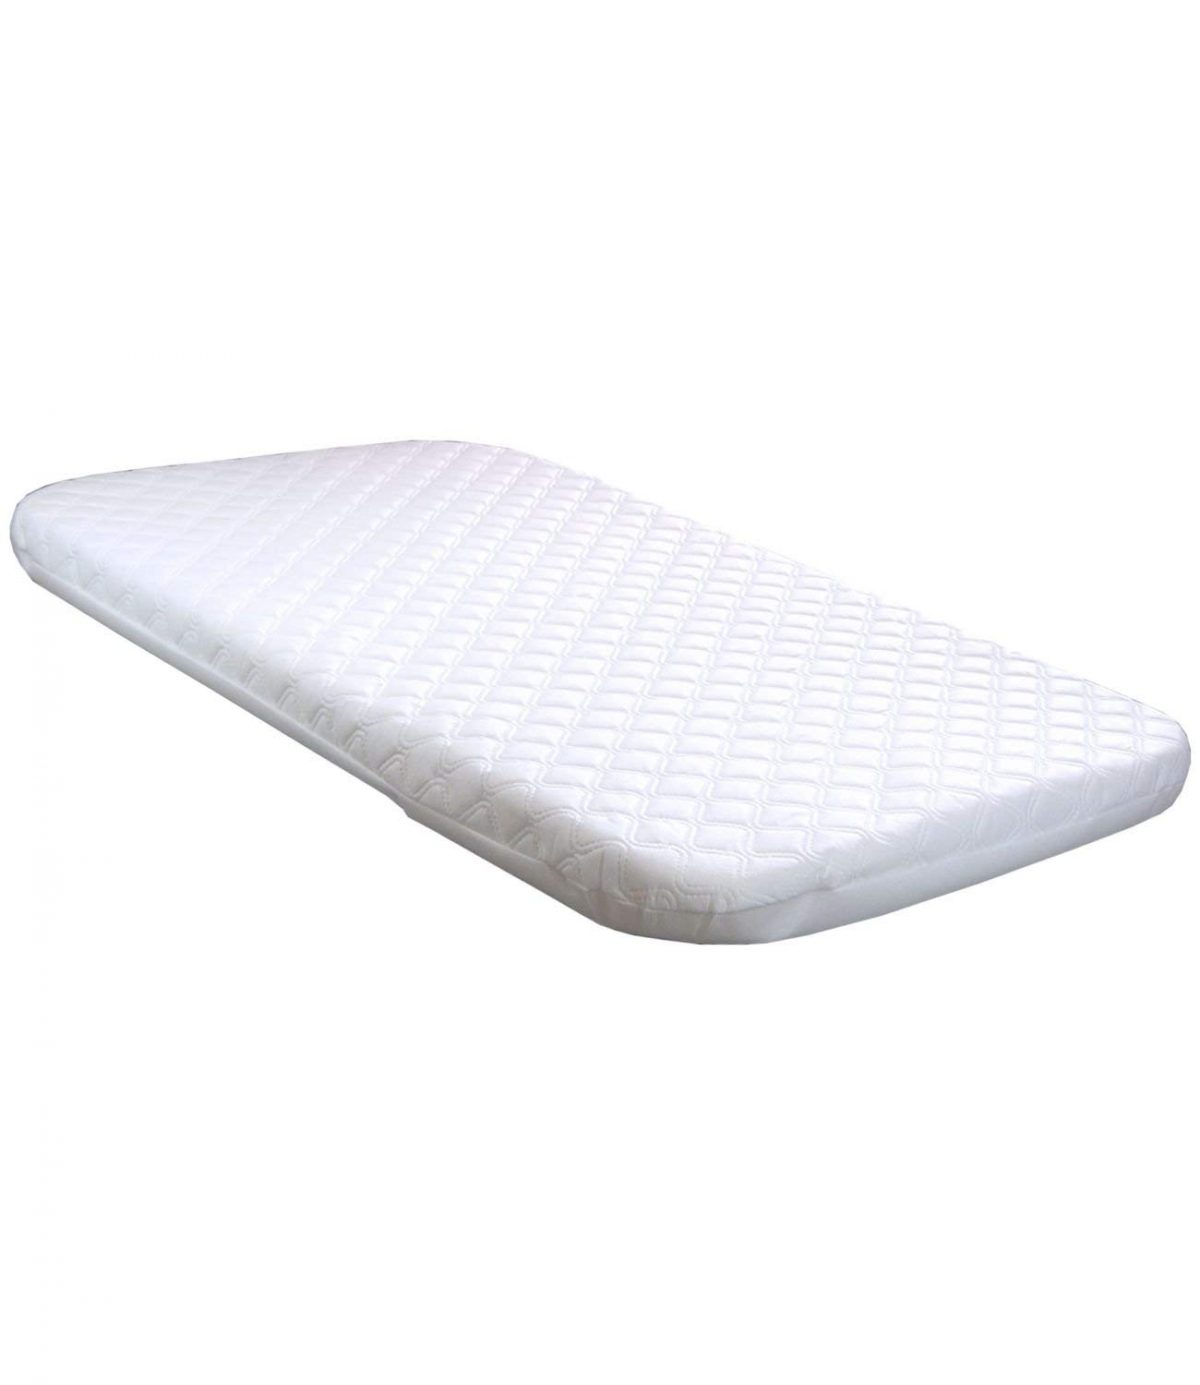 Replacement Mattress